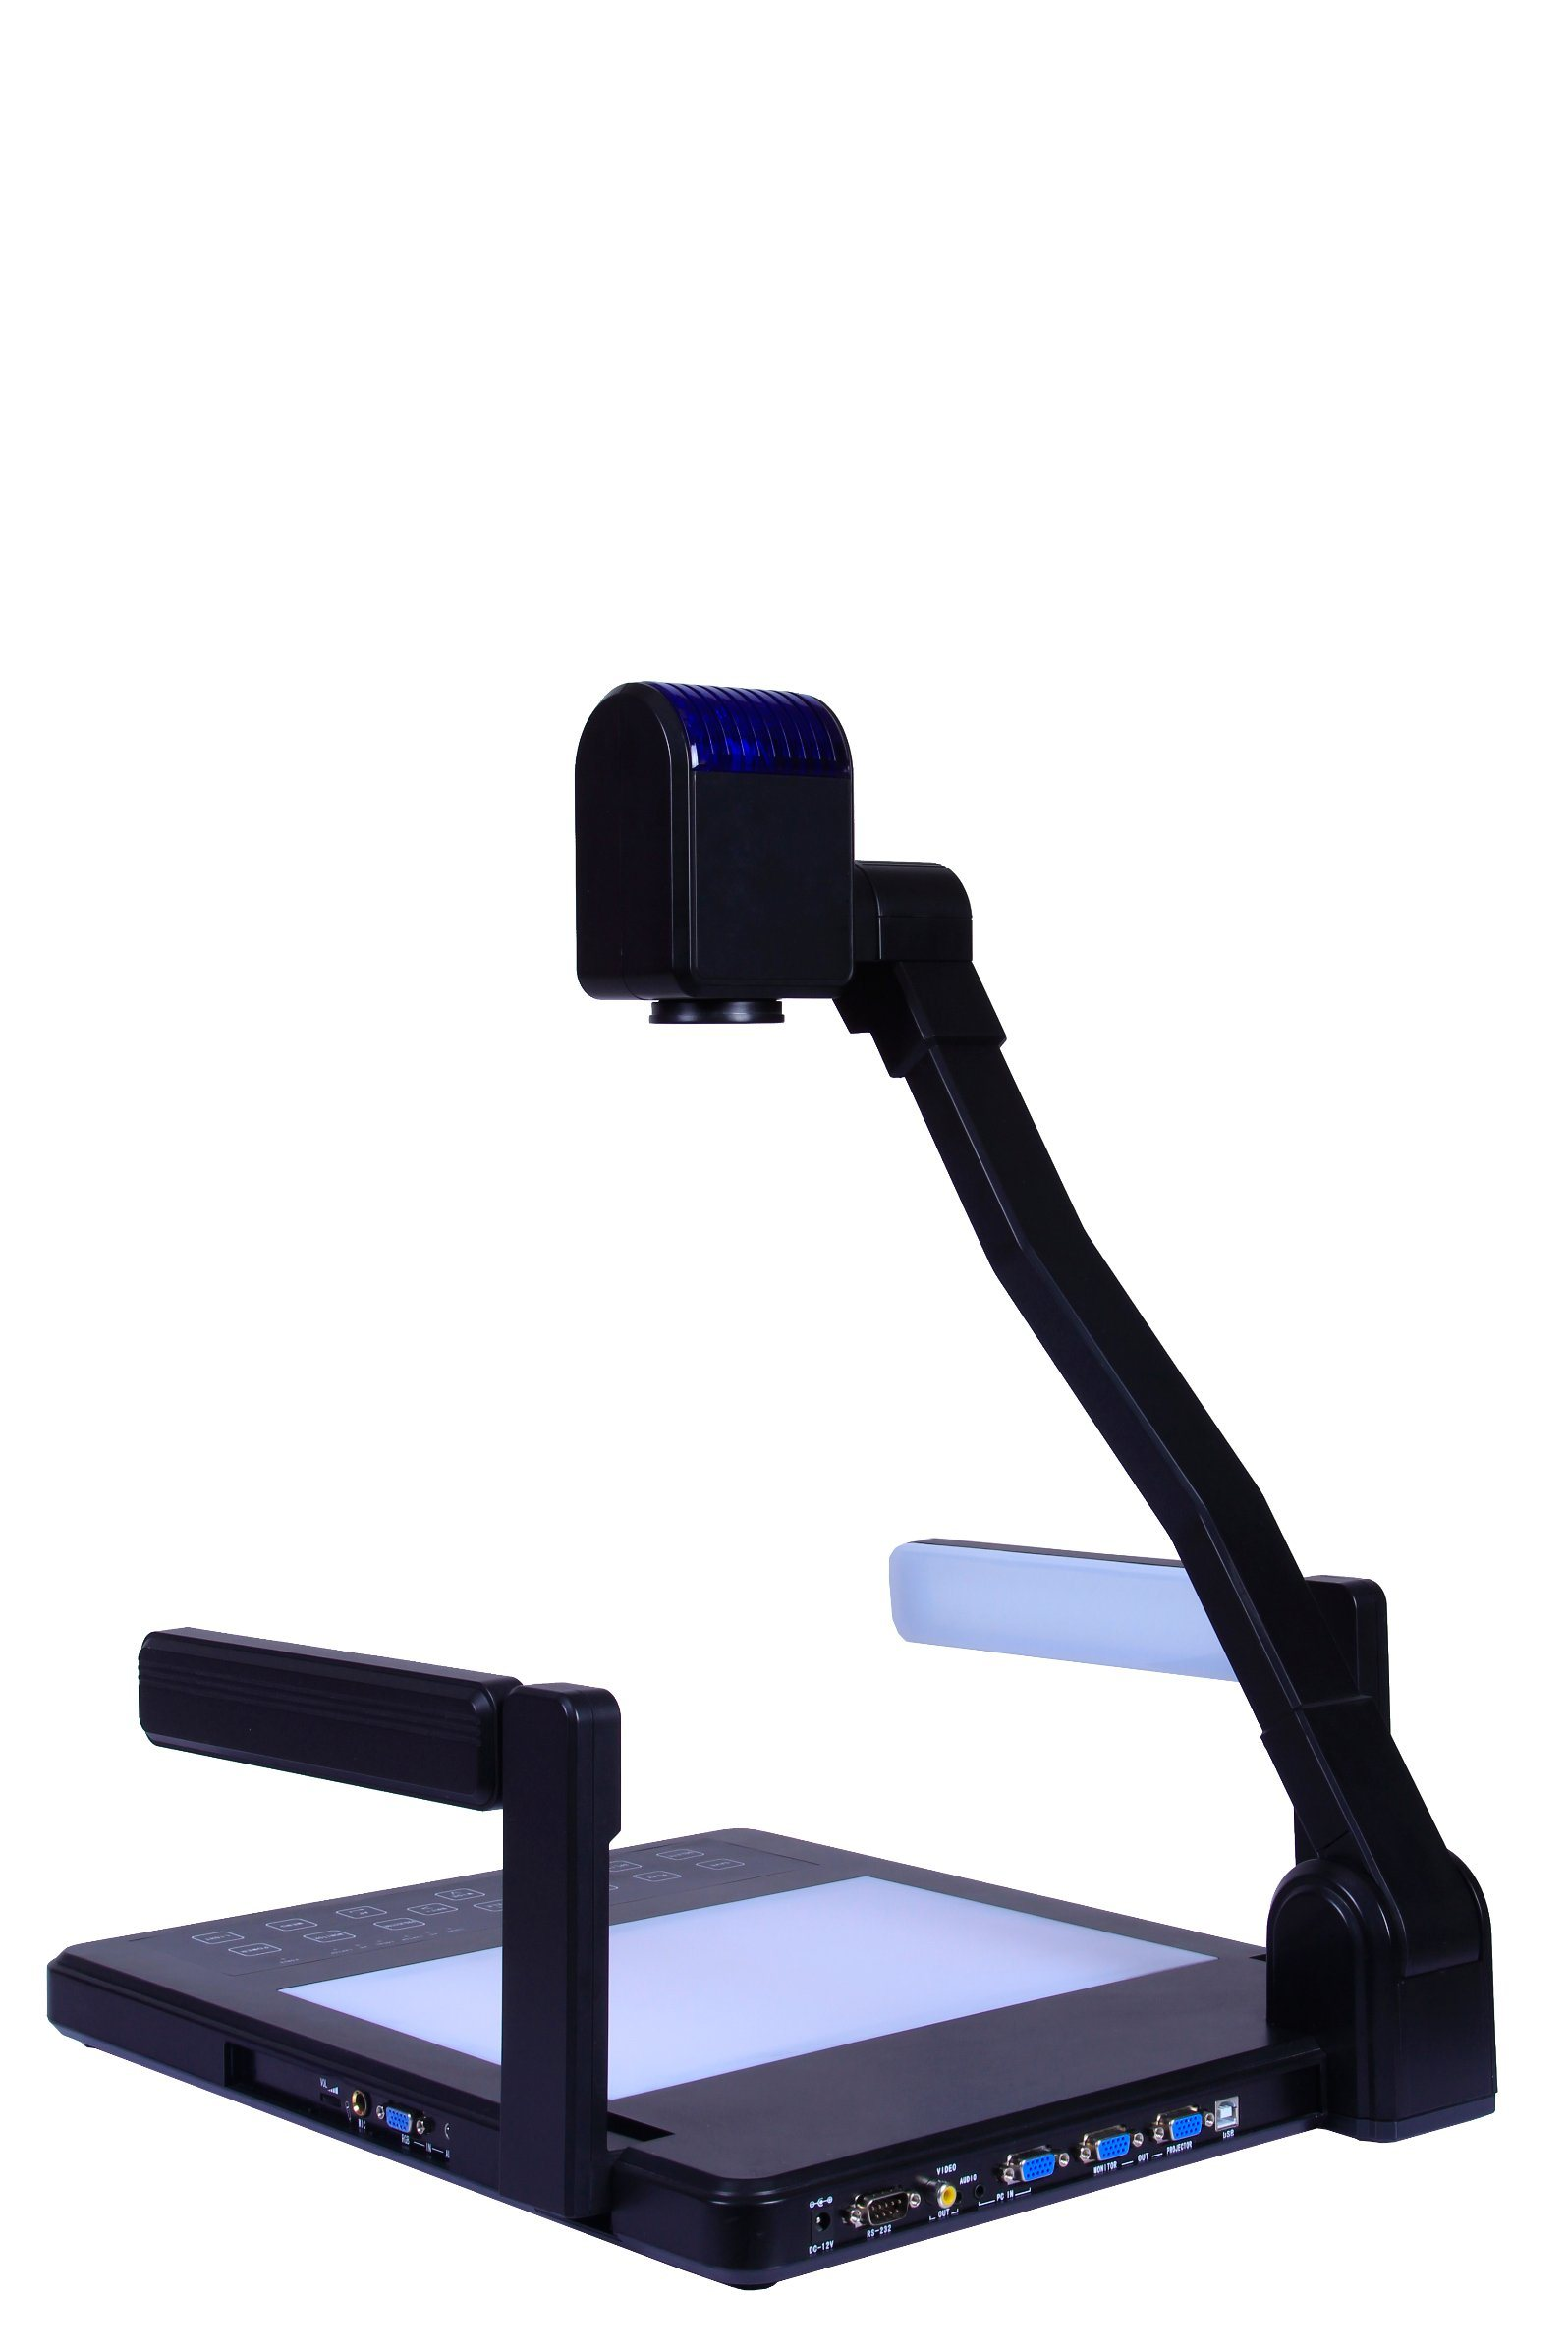 School Supply Document Camera Visual Presenter for Digital Classroom